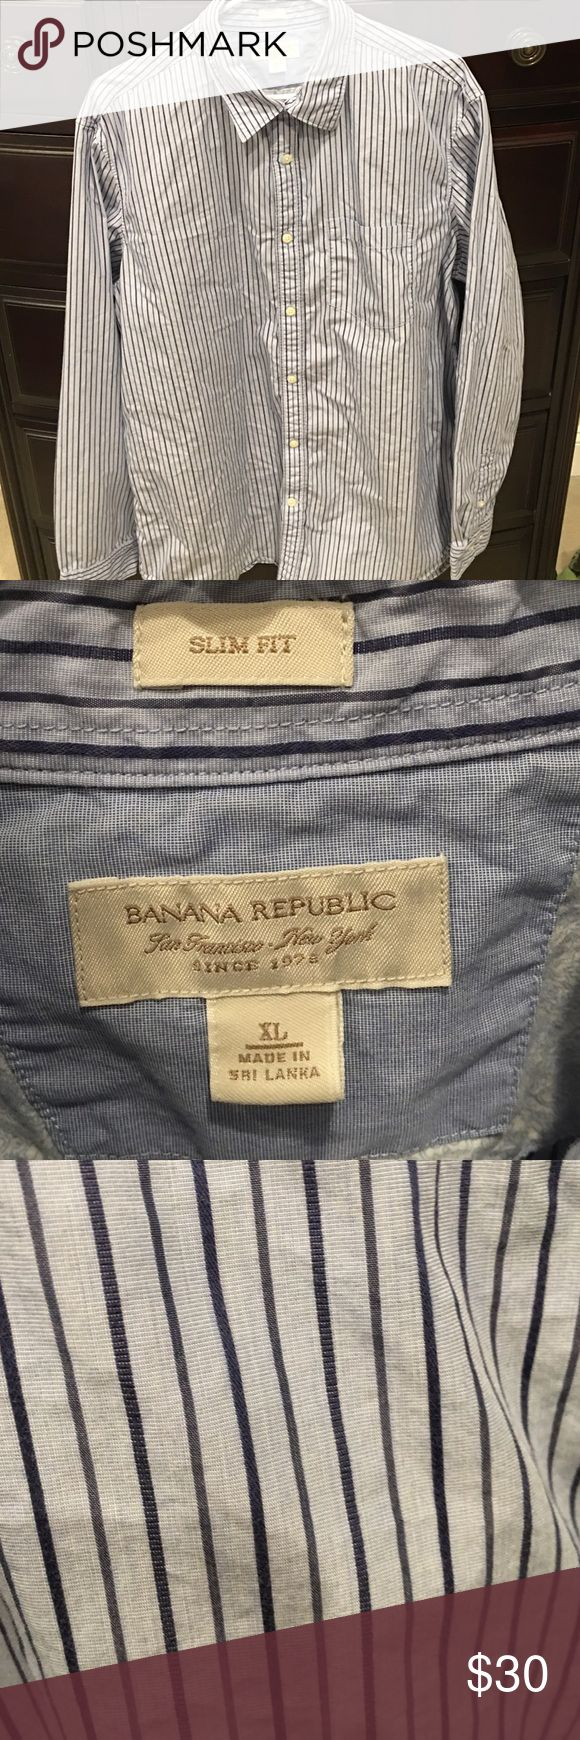 Men's Banana Republic slim fit dress shirt The men's Banana Republic slim fit dress shirt has never been worn. It is a button down dress shirt. The colors are blue with dark blue stripes. Banana Republic Shirts Dress Shirts